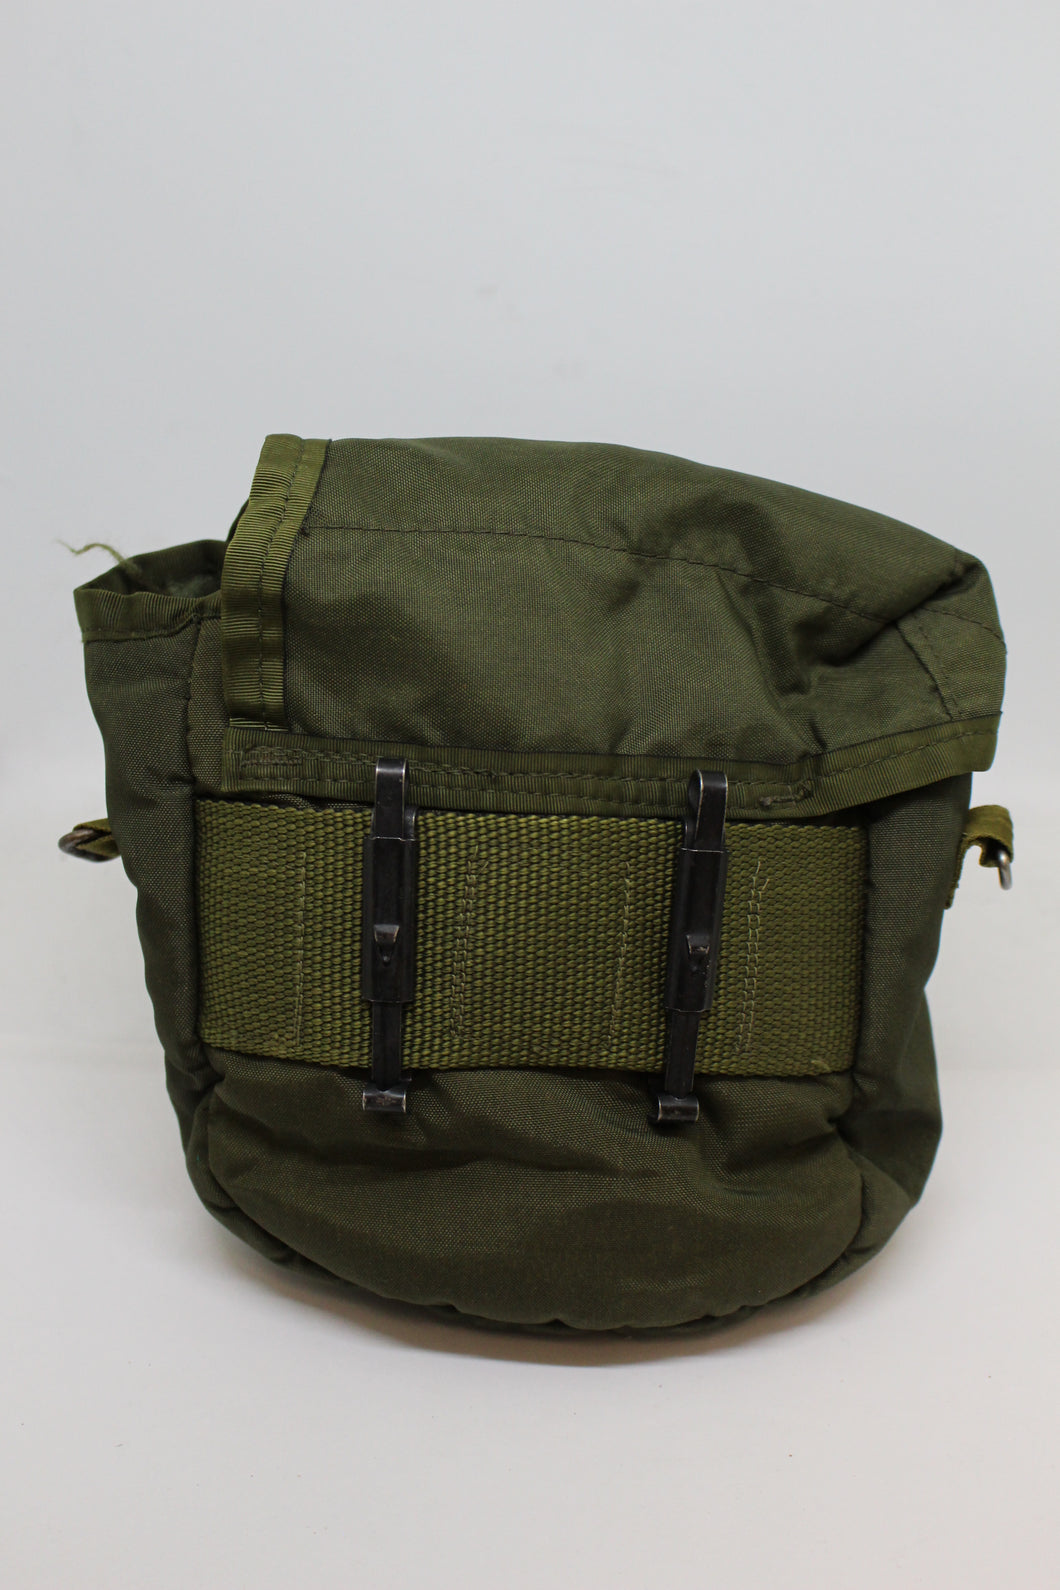 US Military Collapsible Canteen Cover, OD Green, Grade F